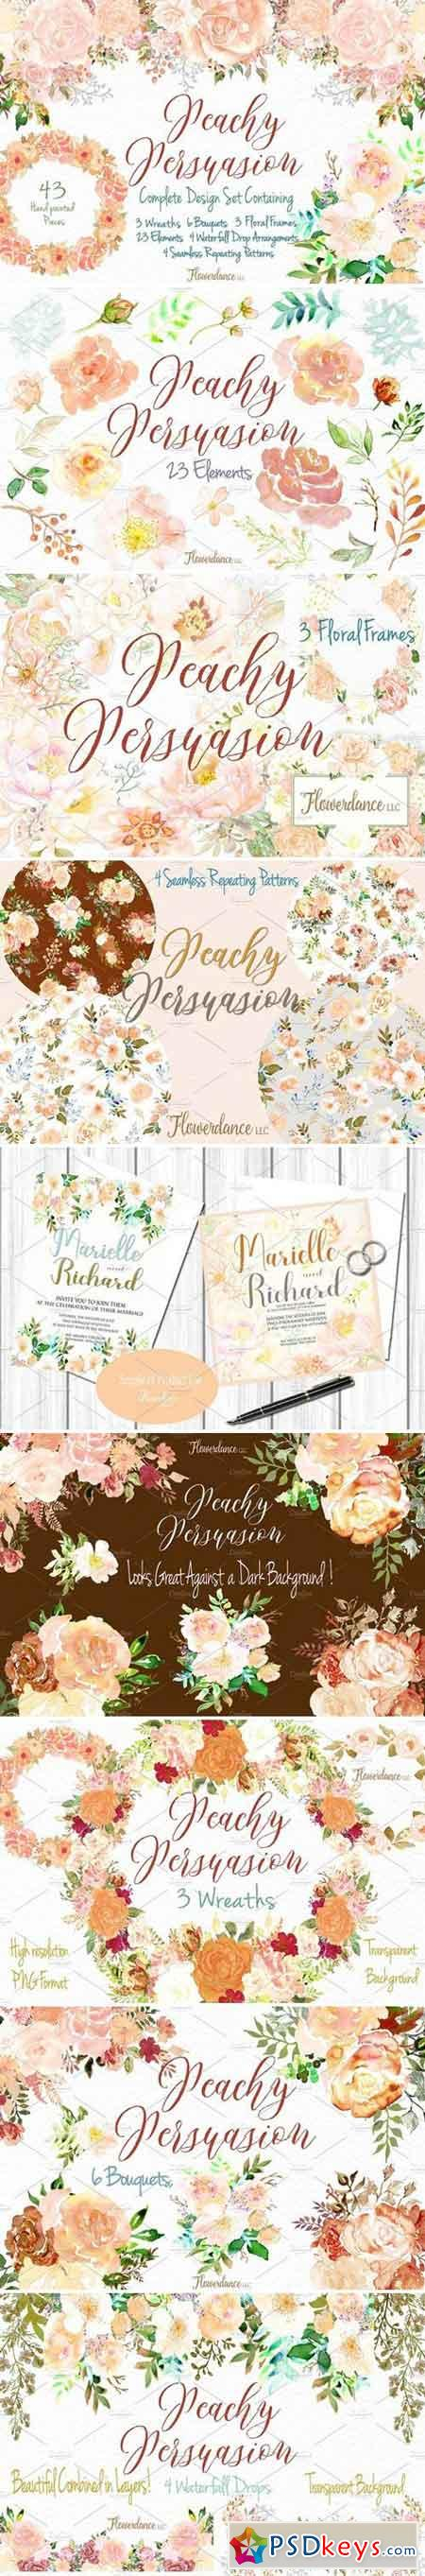 Peach Watercolor Floral Clipart 2430861